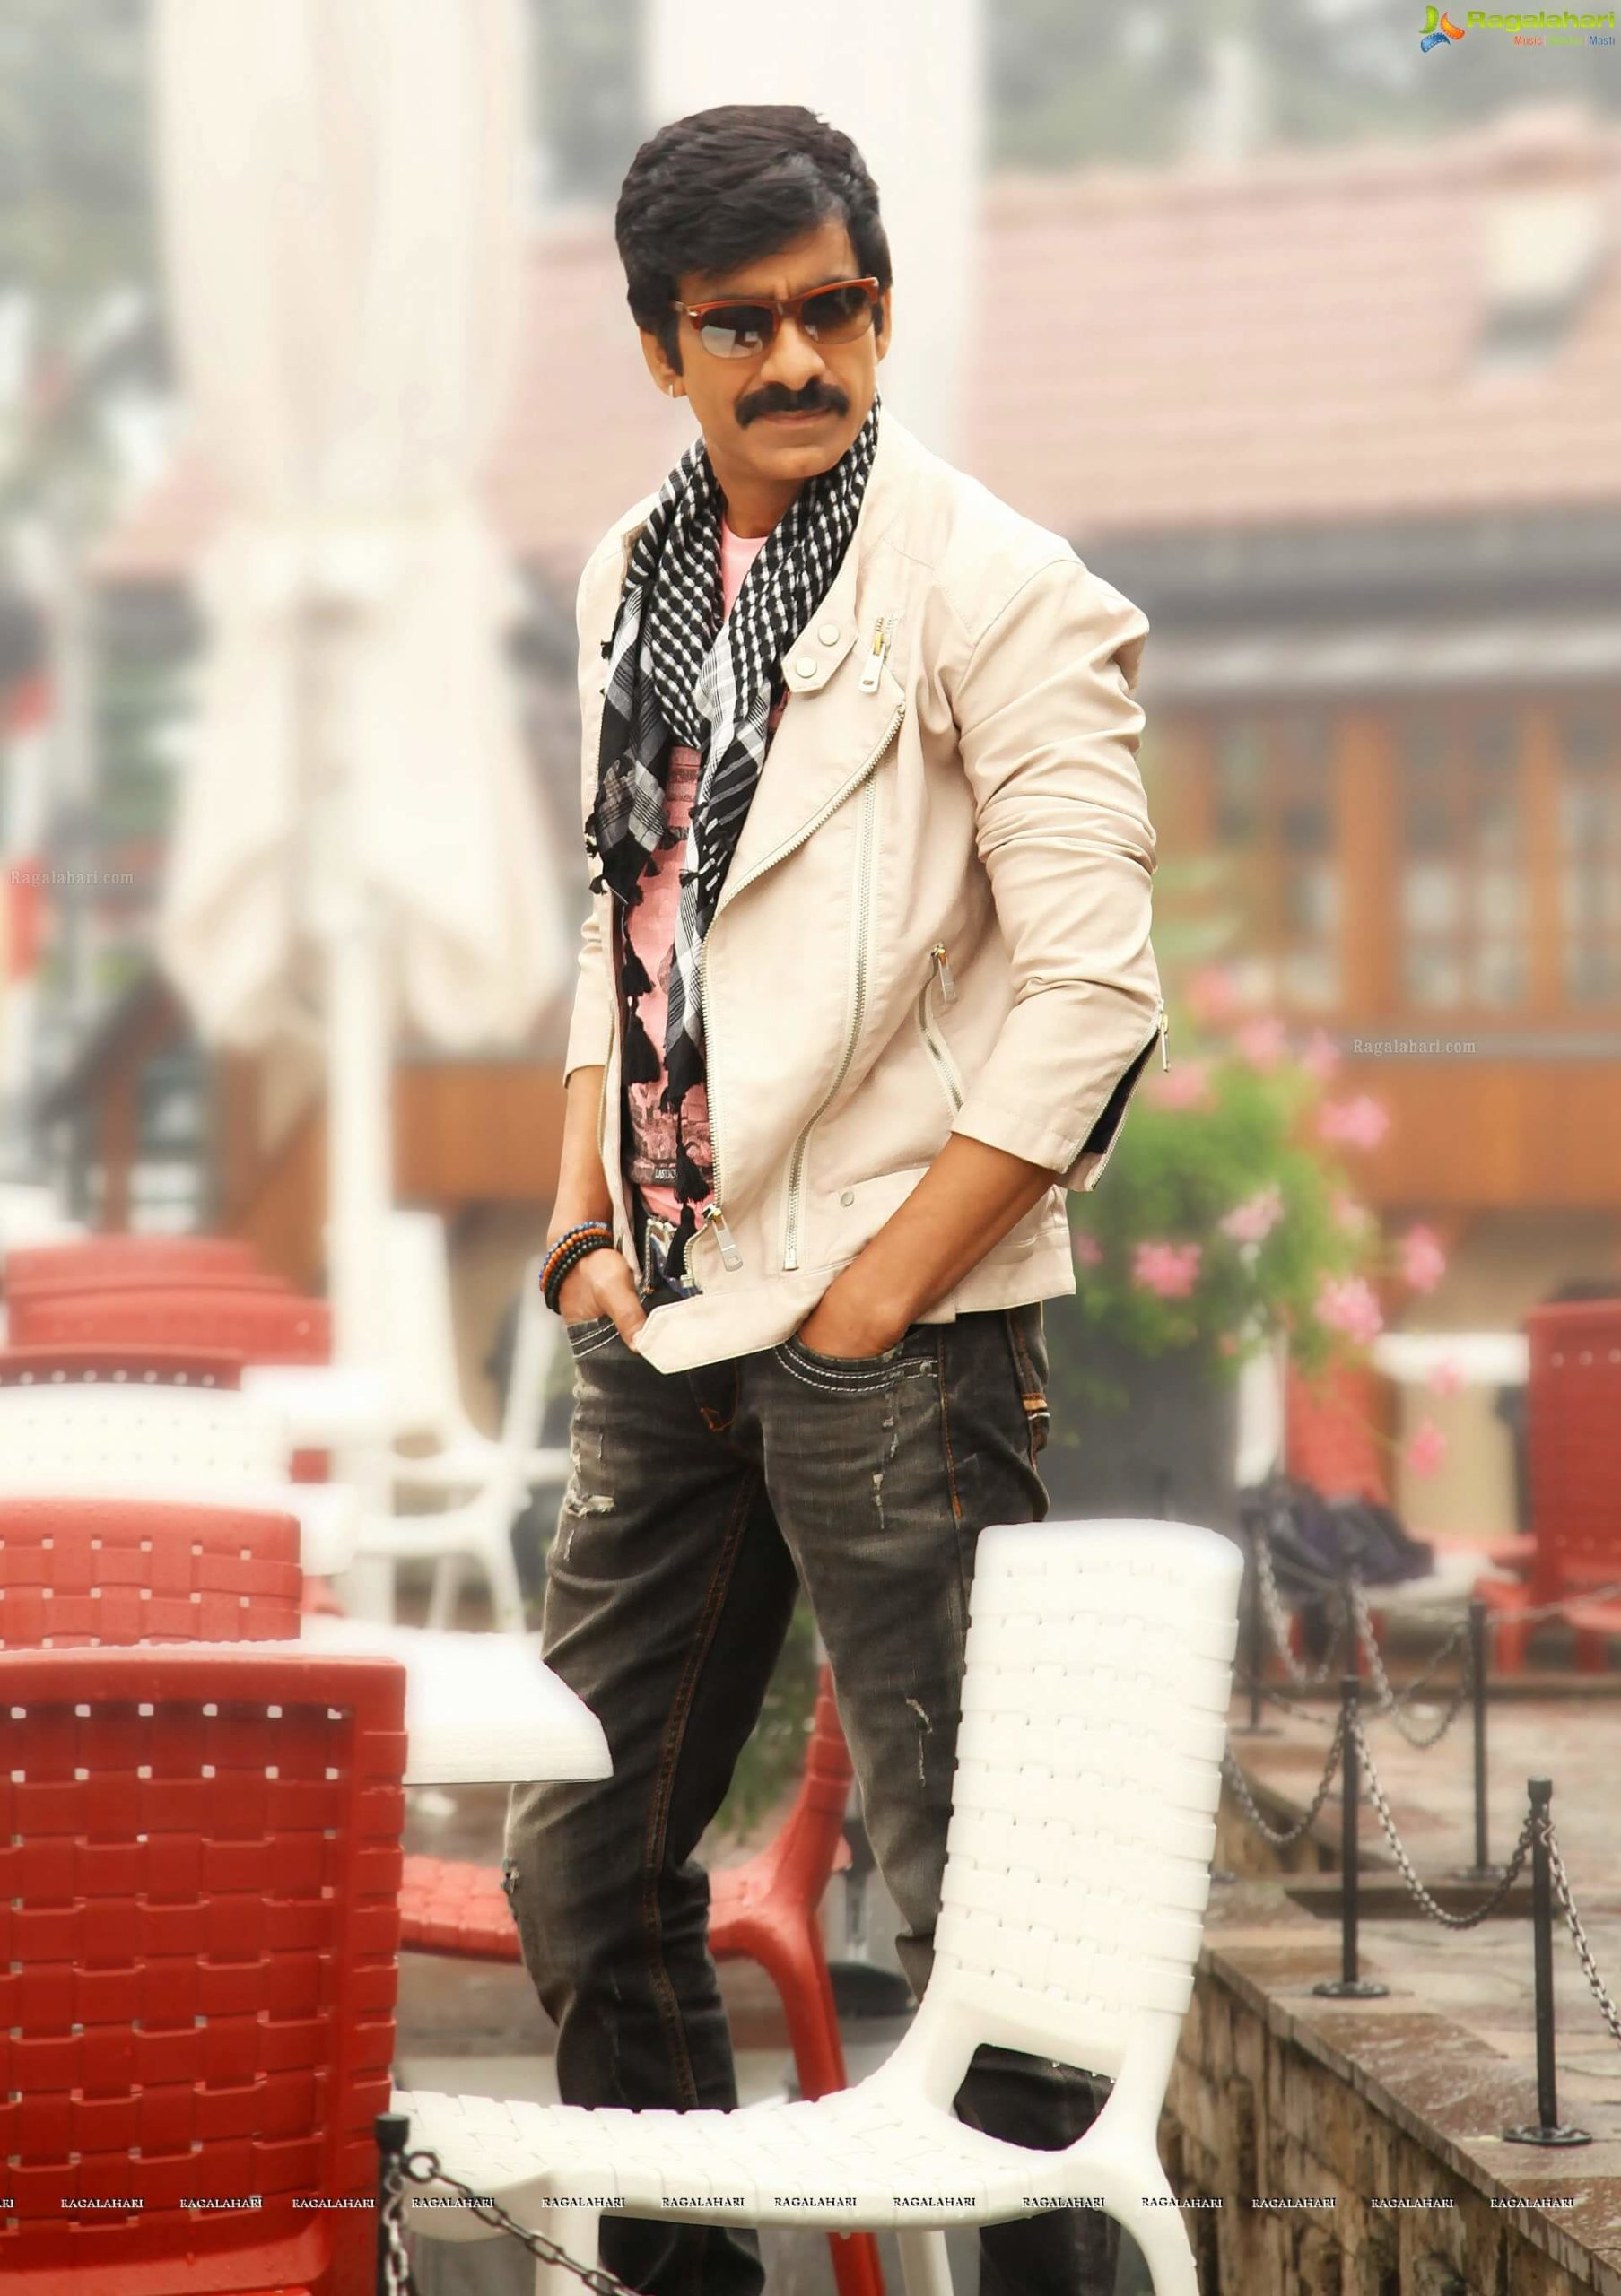 Ravi Teja Movie, Photos(images), Date Of Birth, Family, Brother, Height, Biography, Net Worth, Age, Wife, Details, Education, Instagram, Twitter, Wiki, Imdb, Facebook, Hairstyle, Youtube (56)